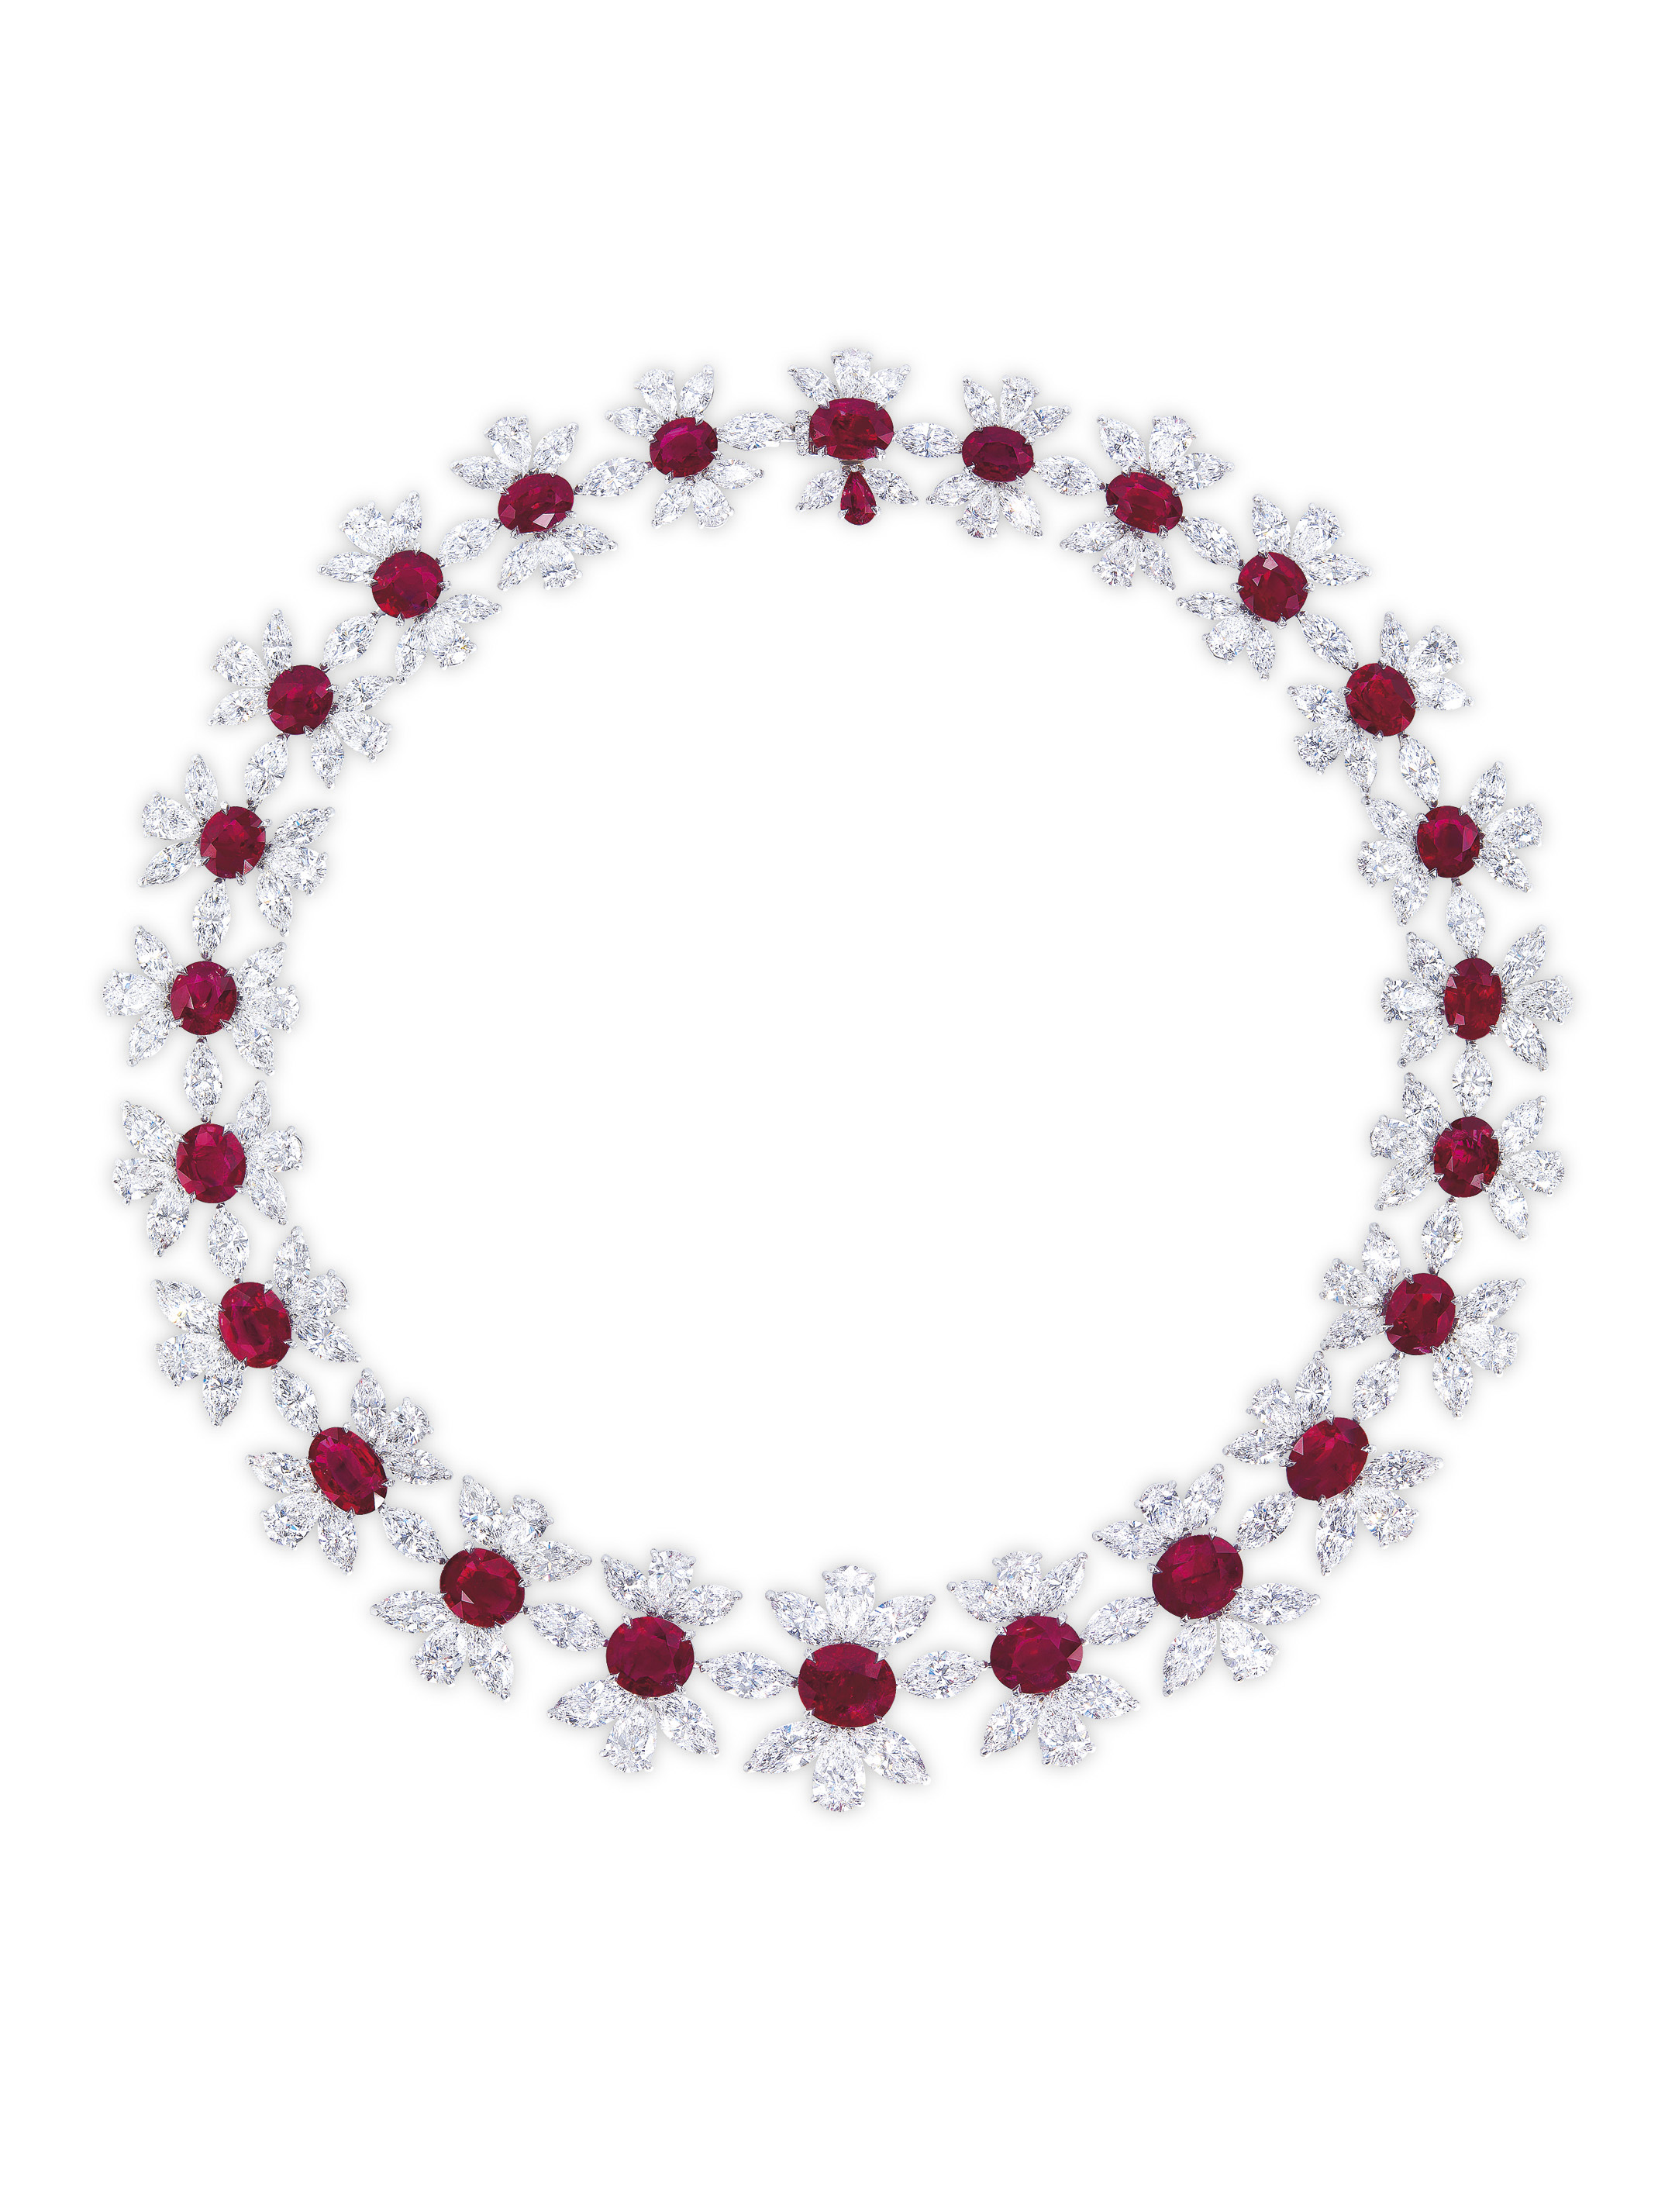 A RARE RUBY AND DIAMOND NECKLACE, BY J.W. CURRENS